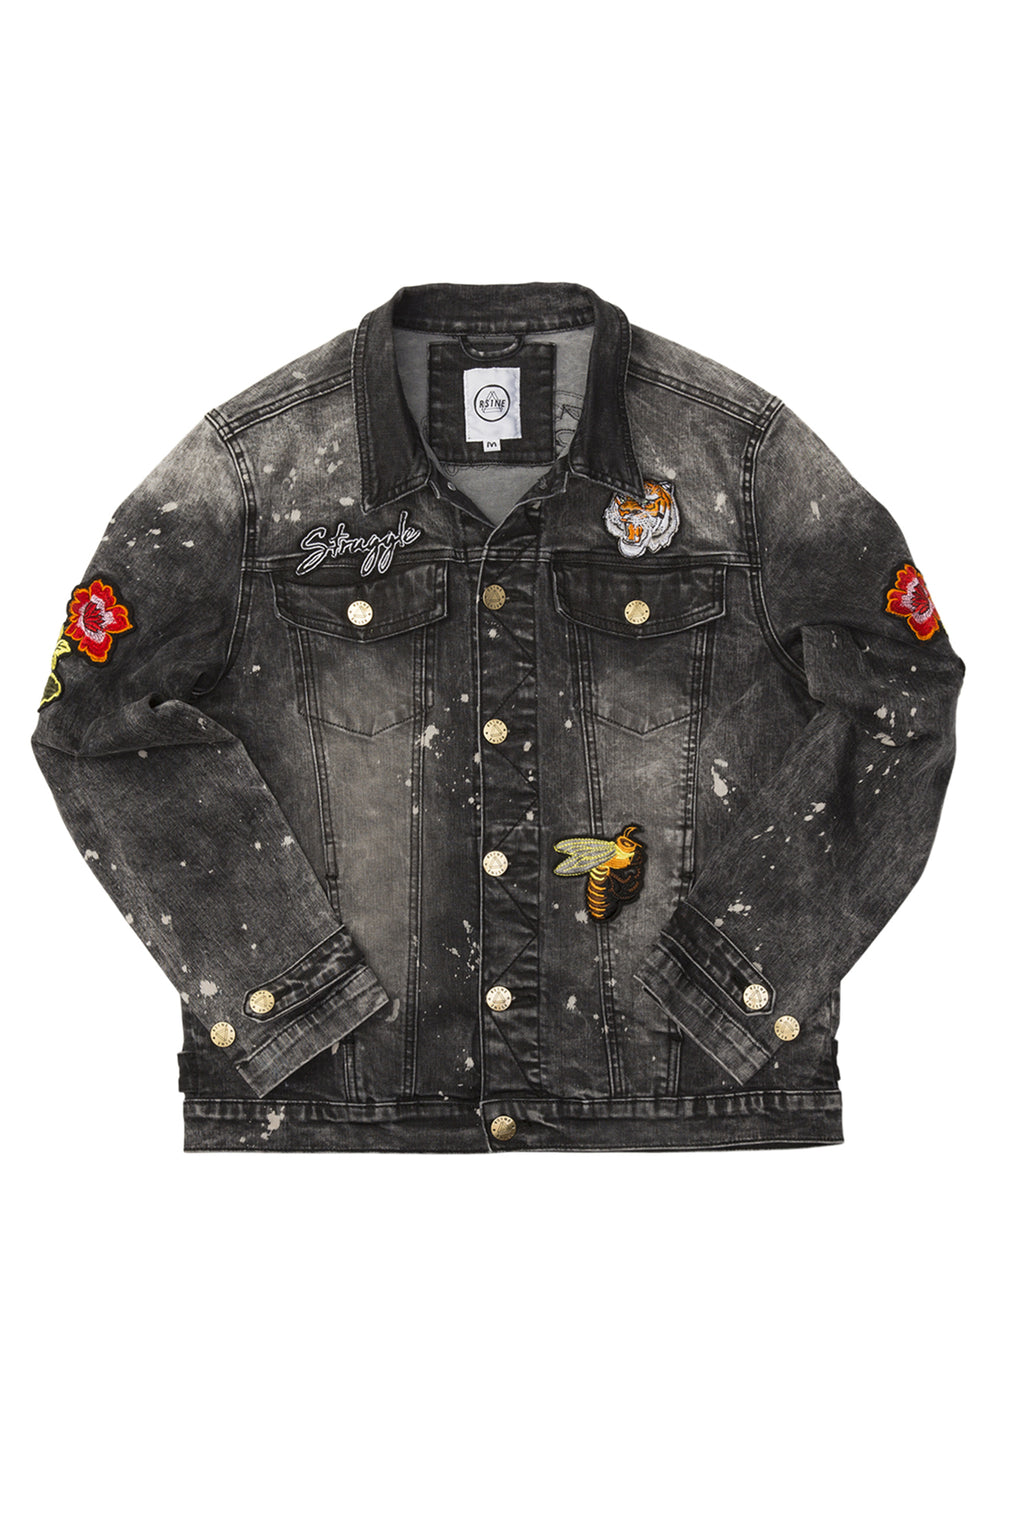 RISE AS 1NE MENS PATCHED PAINT SPLATER DENIM JACKET